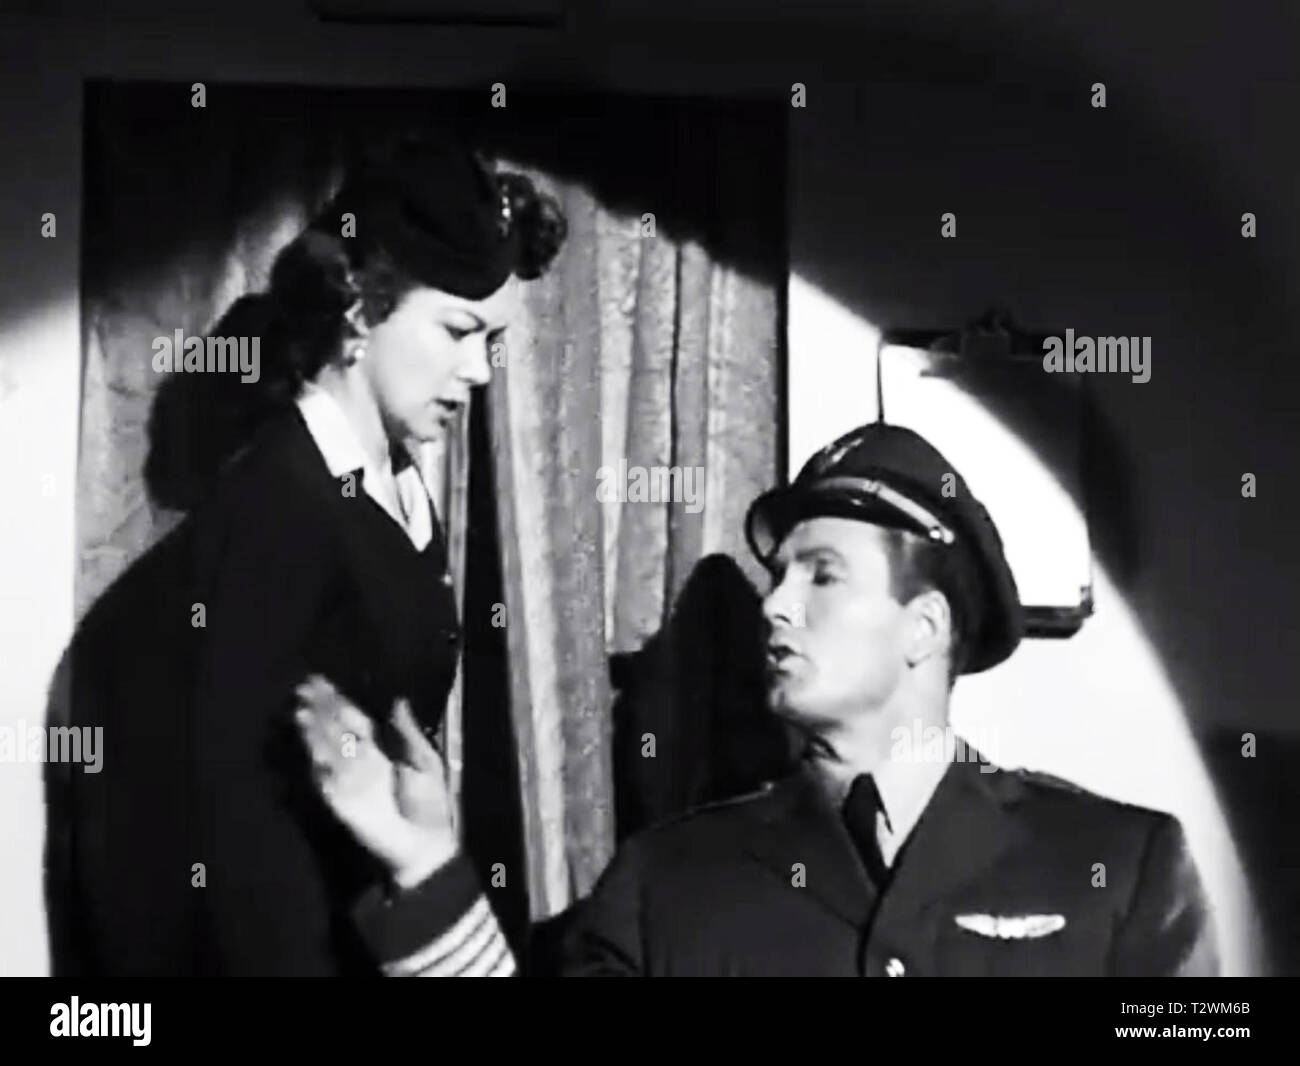 The plane and Pilots from Plan 9 from Outer Space - Stock Image